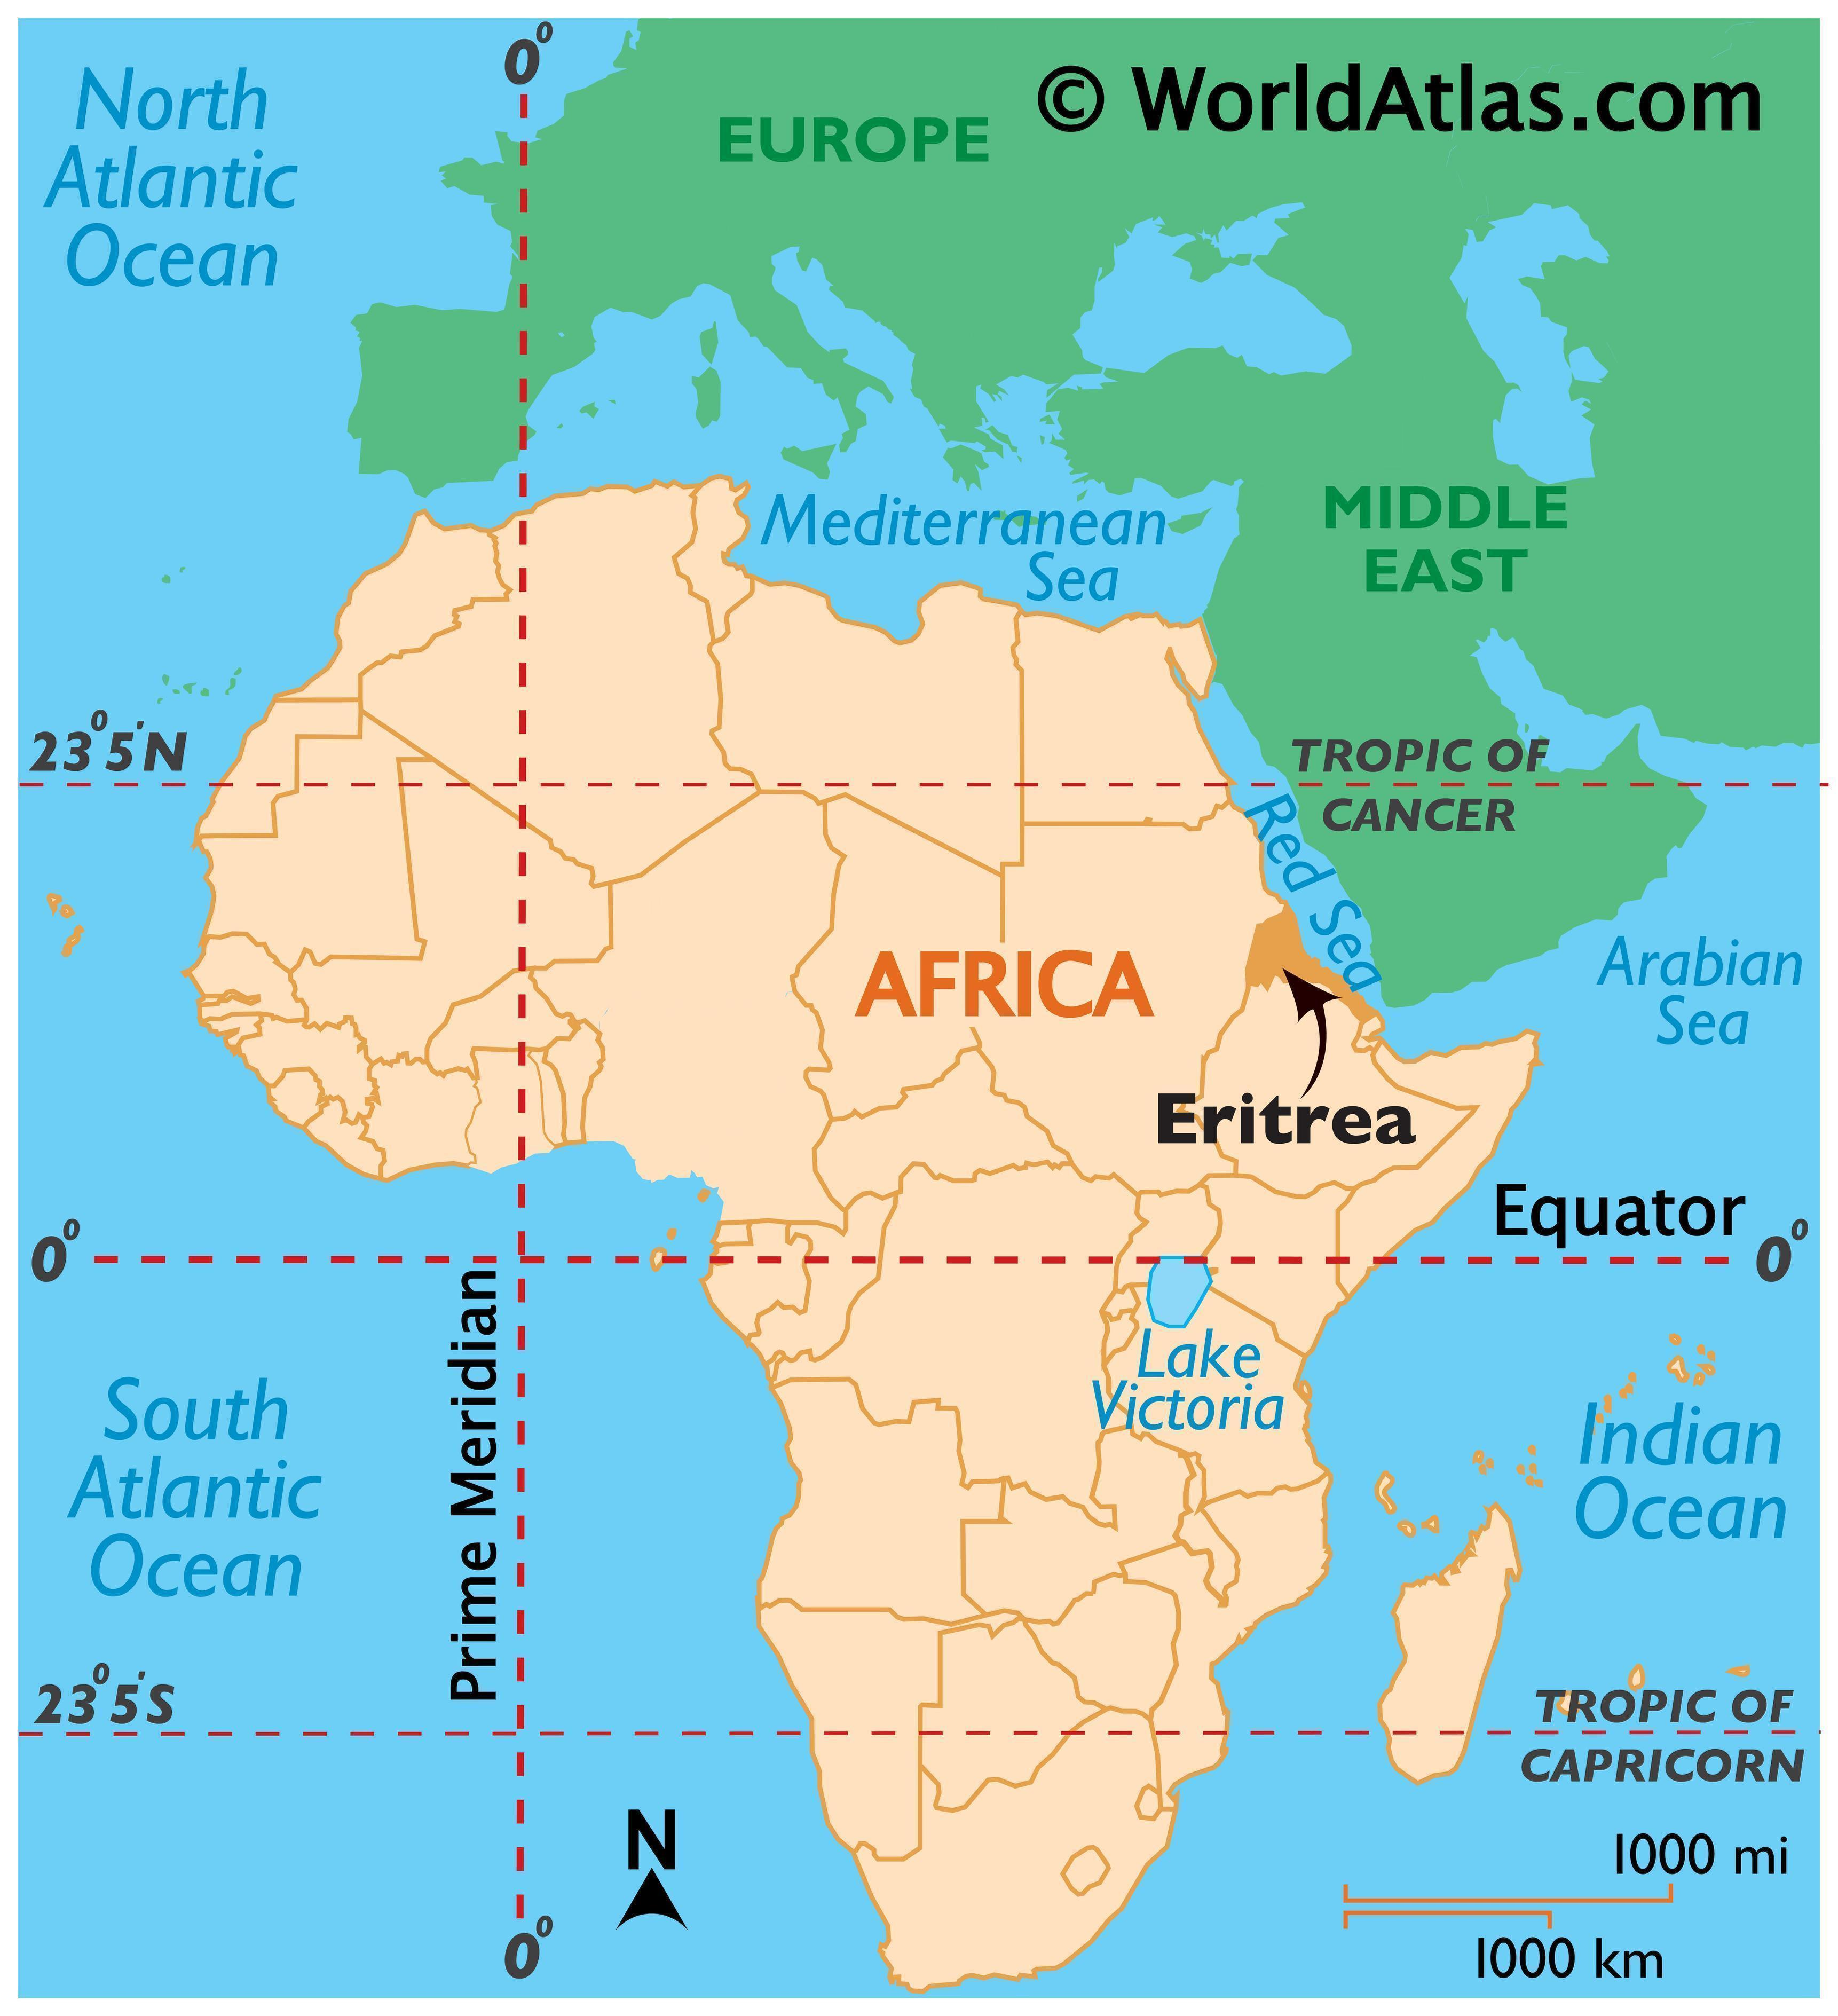 Map showing location of Eritrea in the world.